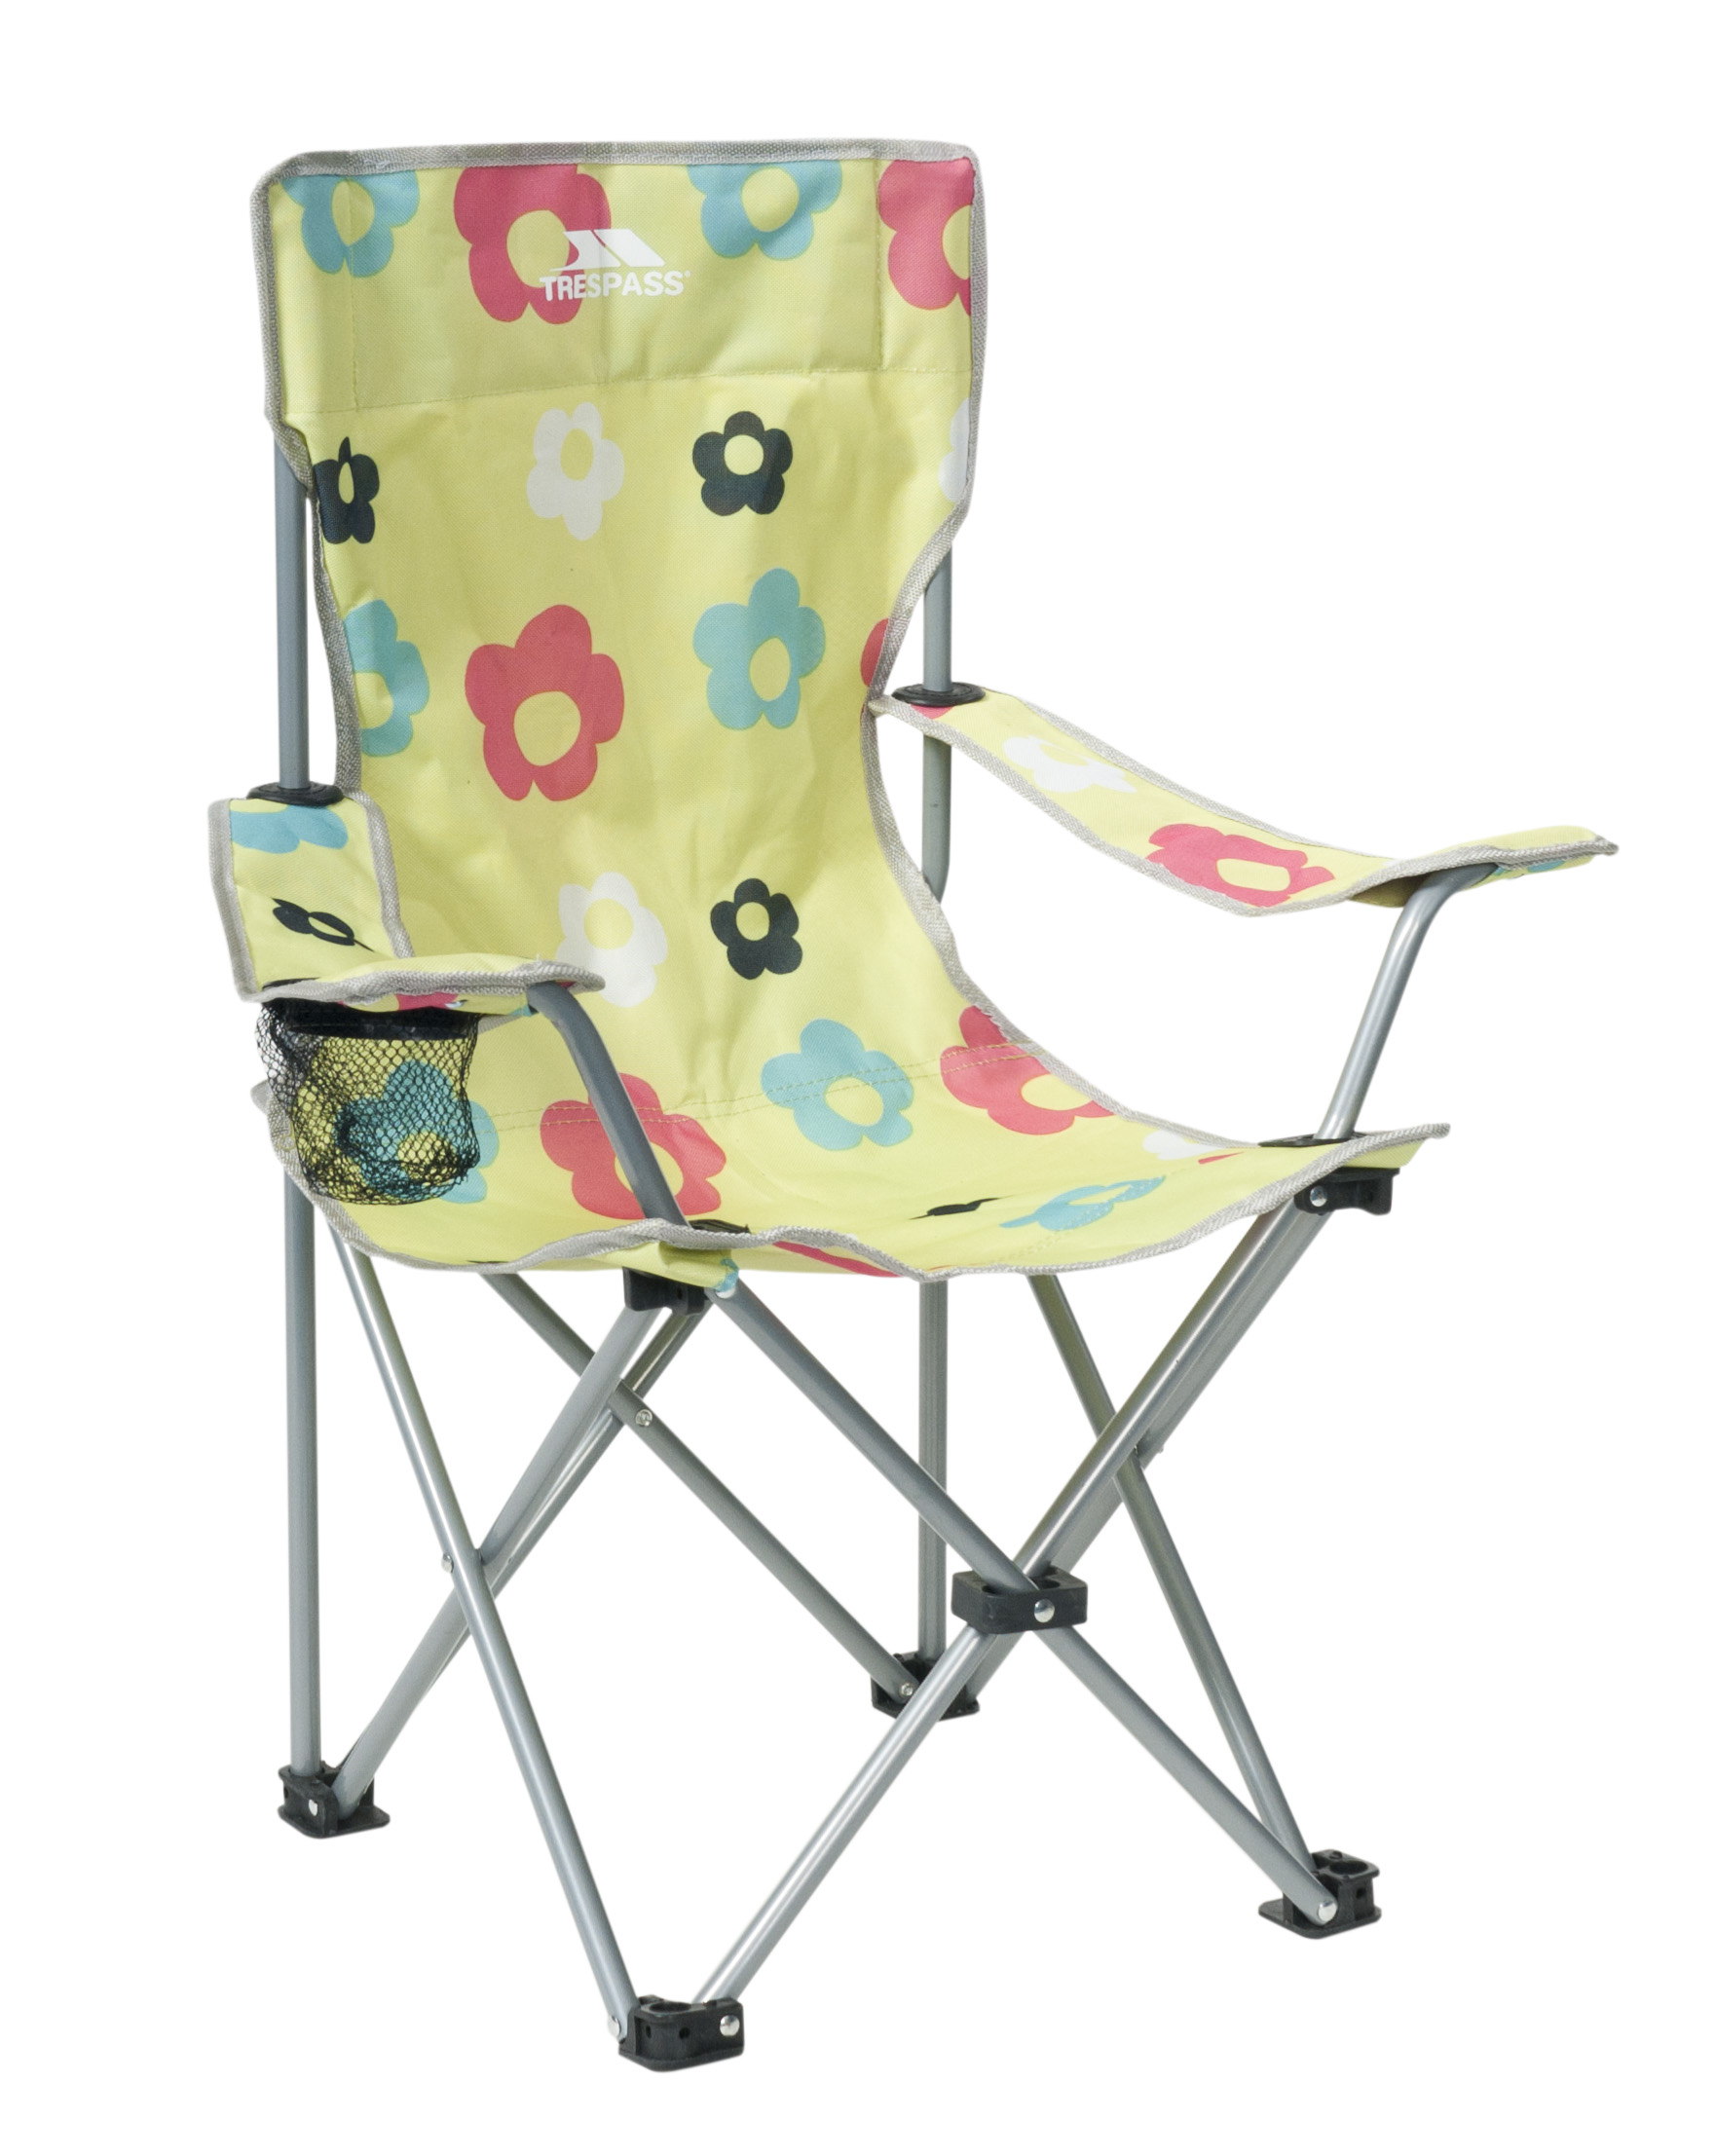 Trespass Joejoe Kids Folding Garden Camping Chair with Carrybag